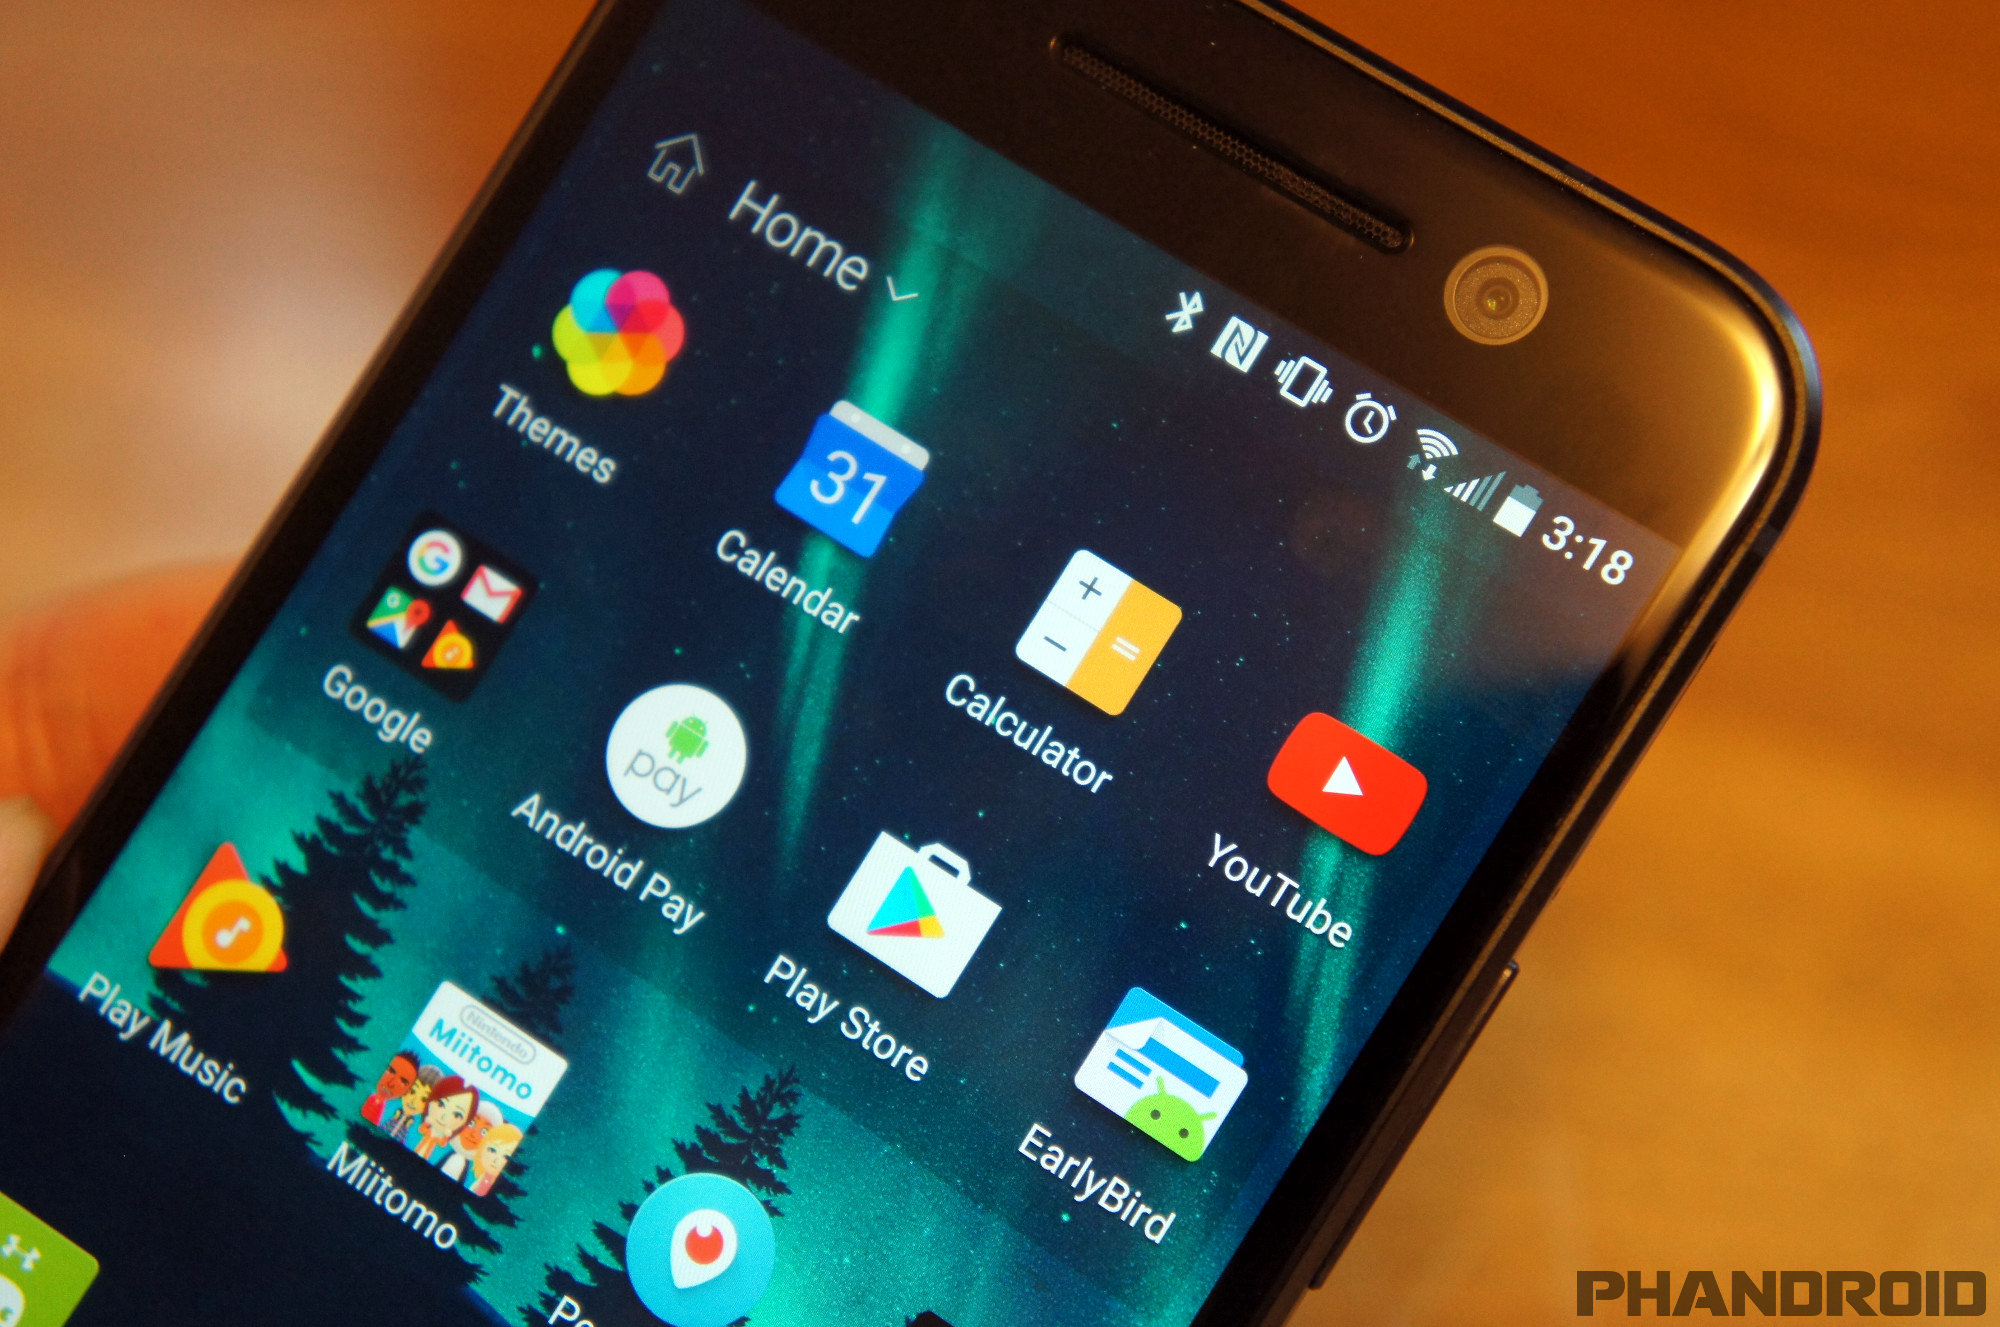 How to manage the Home screen & apps on HTC One M9